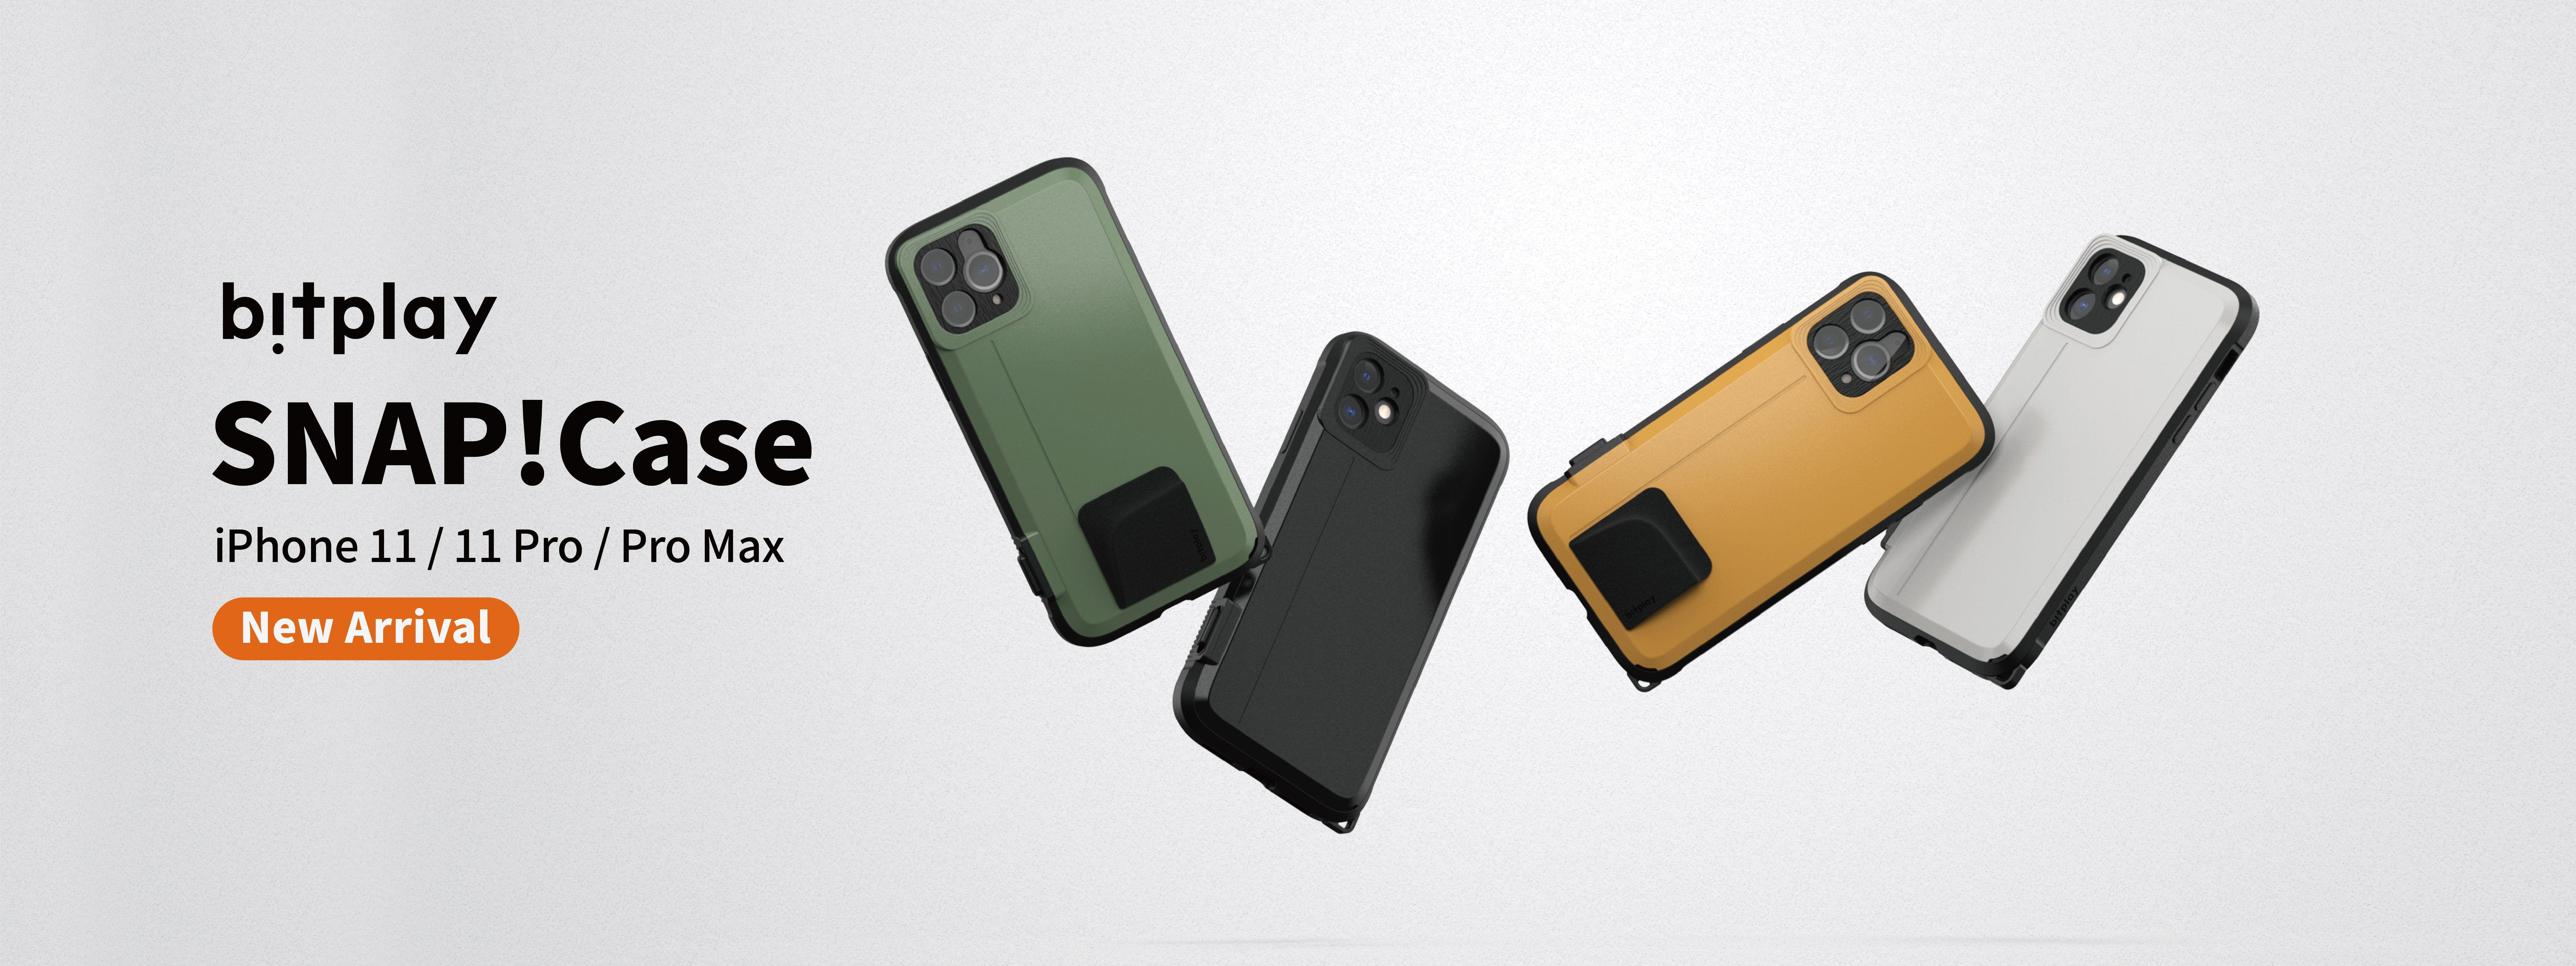 SNAP! Case for iPhone 11 Series Gets New Improvements